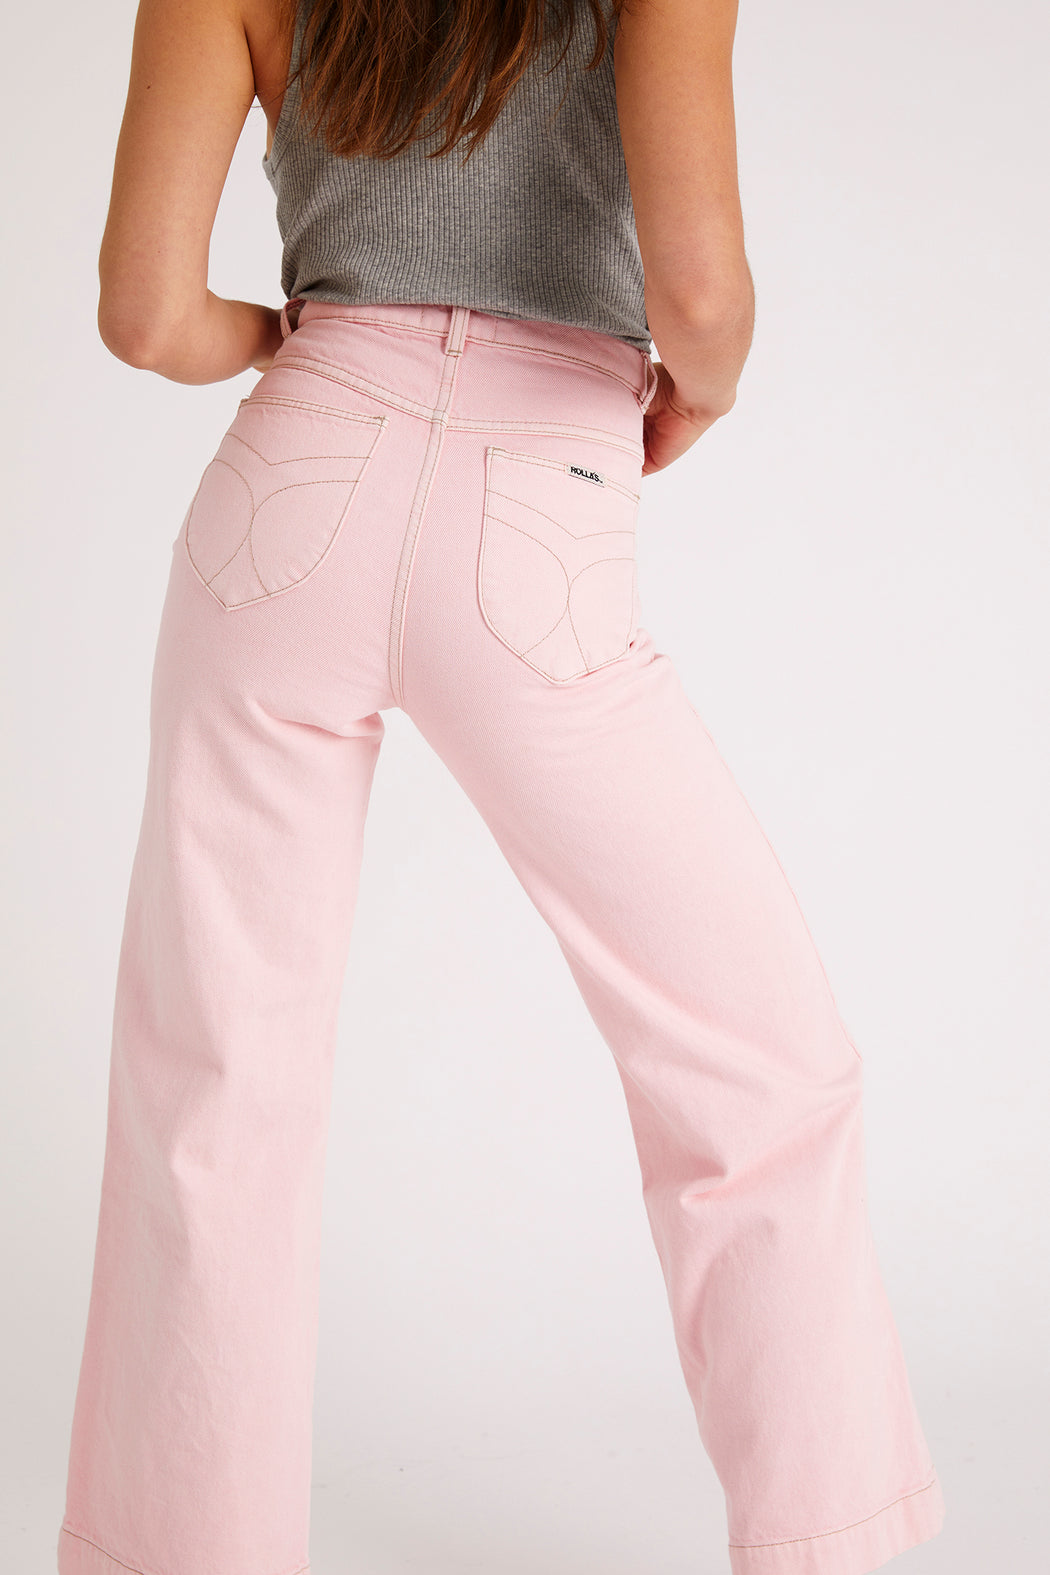 Rolla's Sailor Jean in 80'S Pink